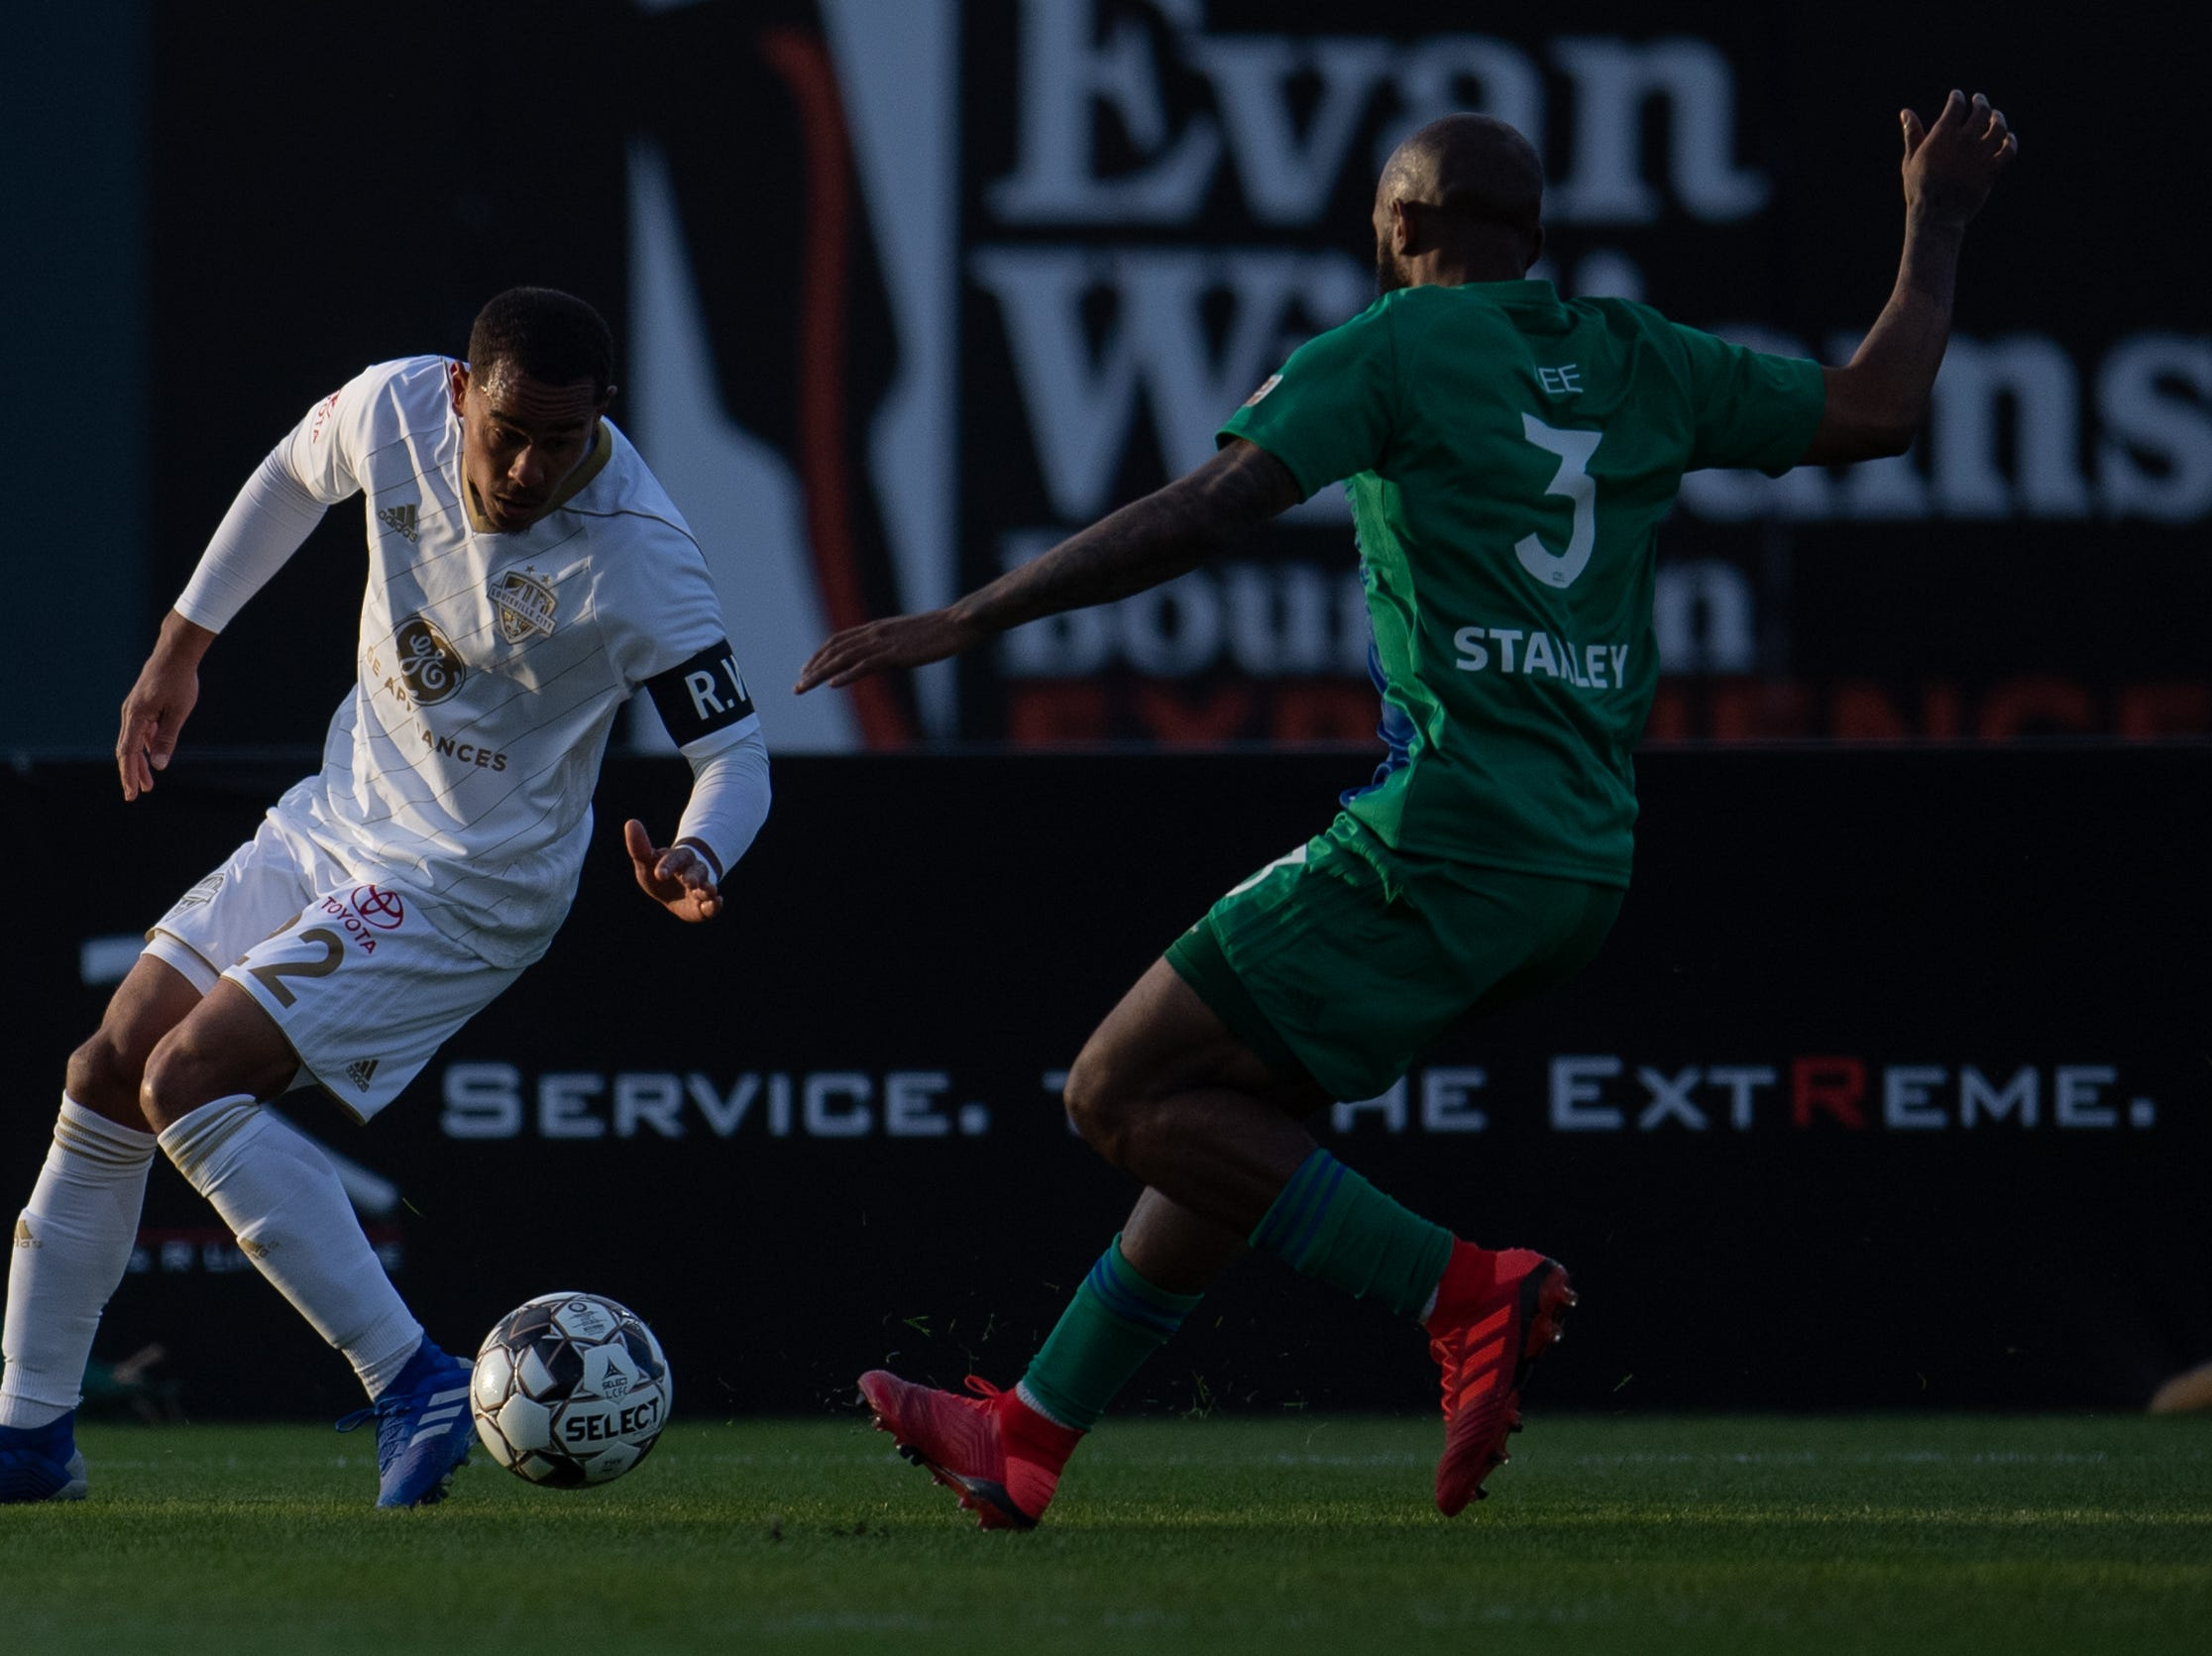 Louisville City FC midfielder George Davis IV plays against Hartford Athletic Raymond Lee during the season opening match in Louisville, Ky., Saturday, March 23, 2019.